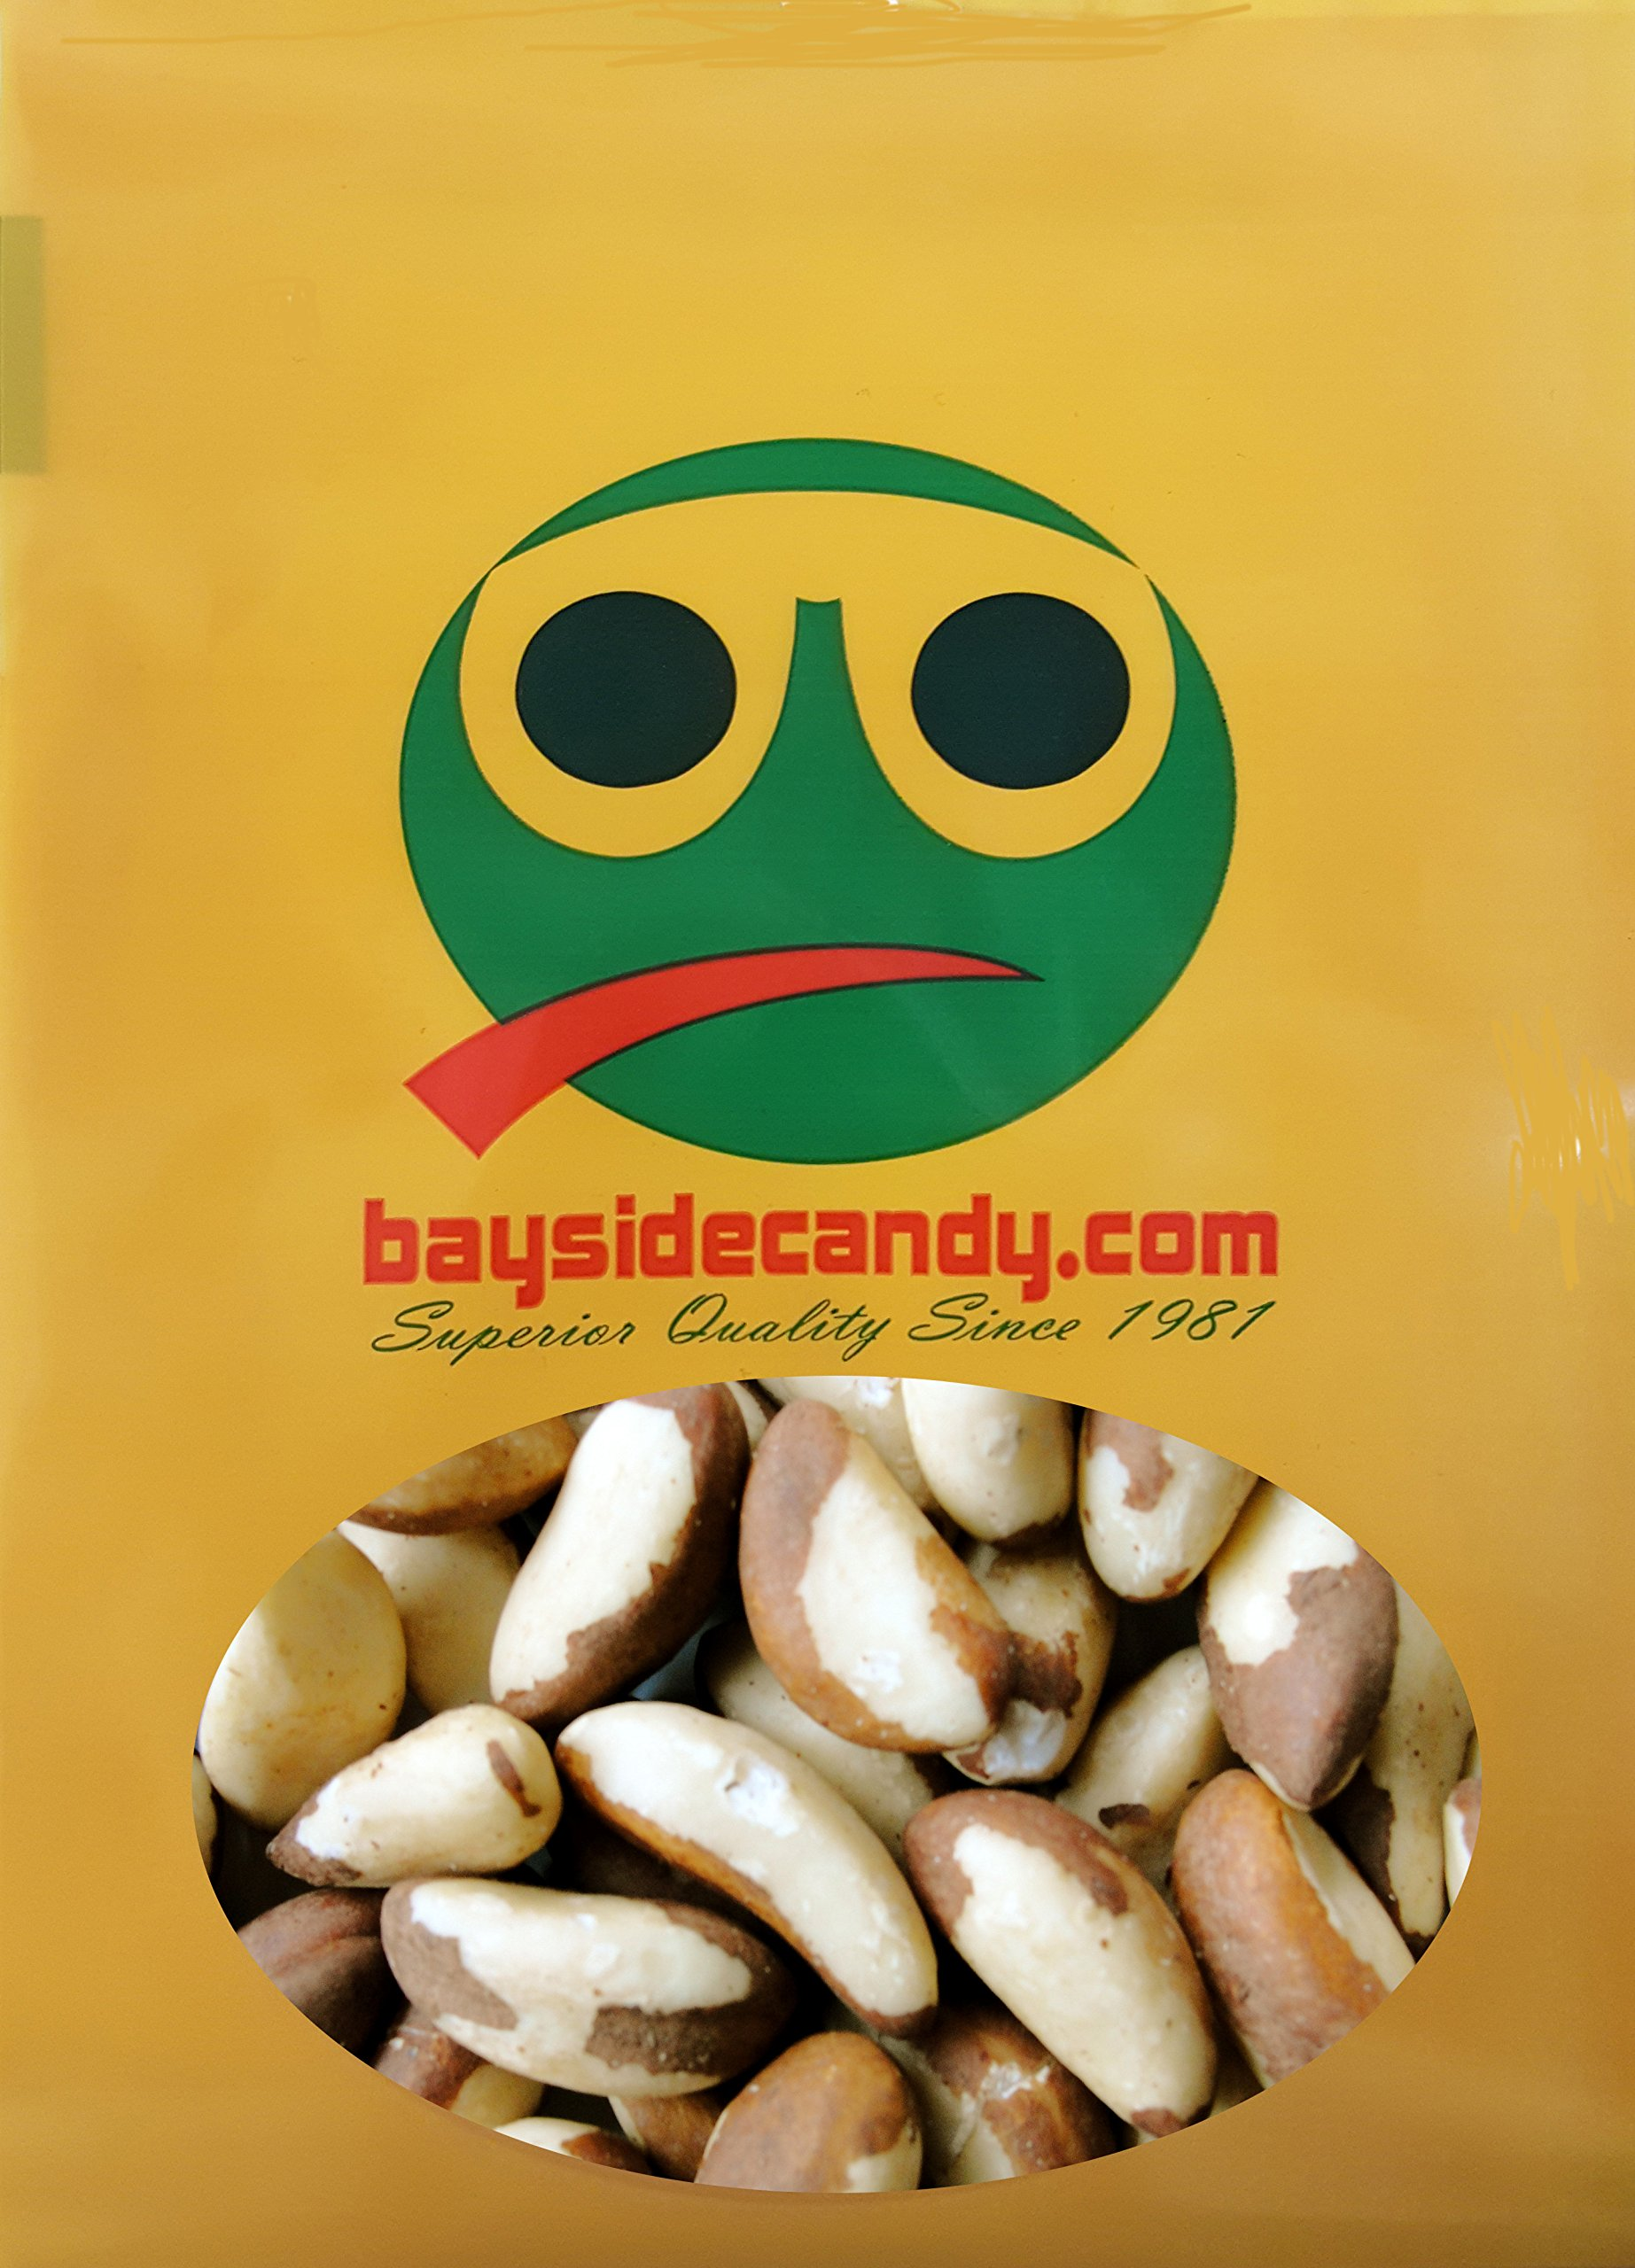 BAYSIDE CANDY RAW WHOLE BRAZIL NUT (2LB)